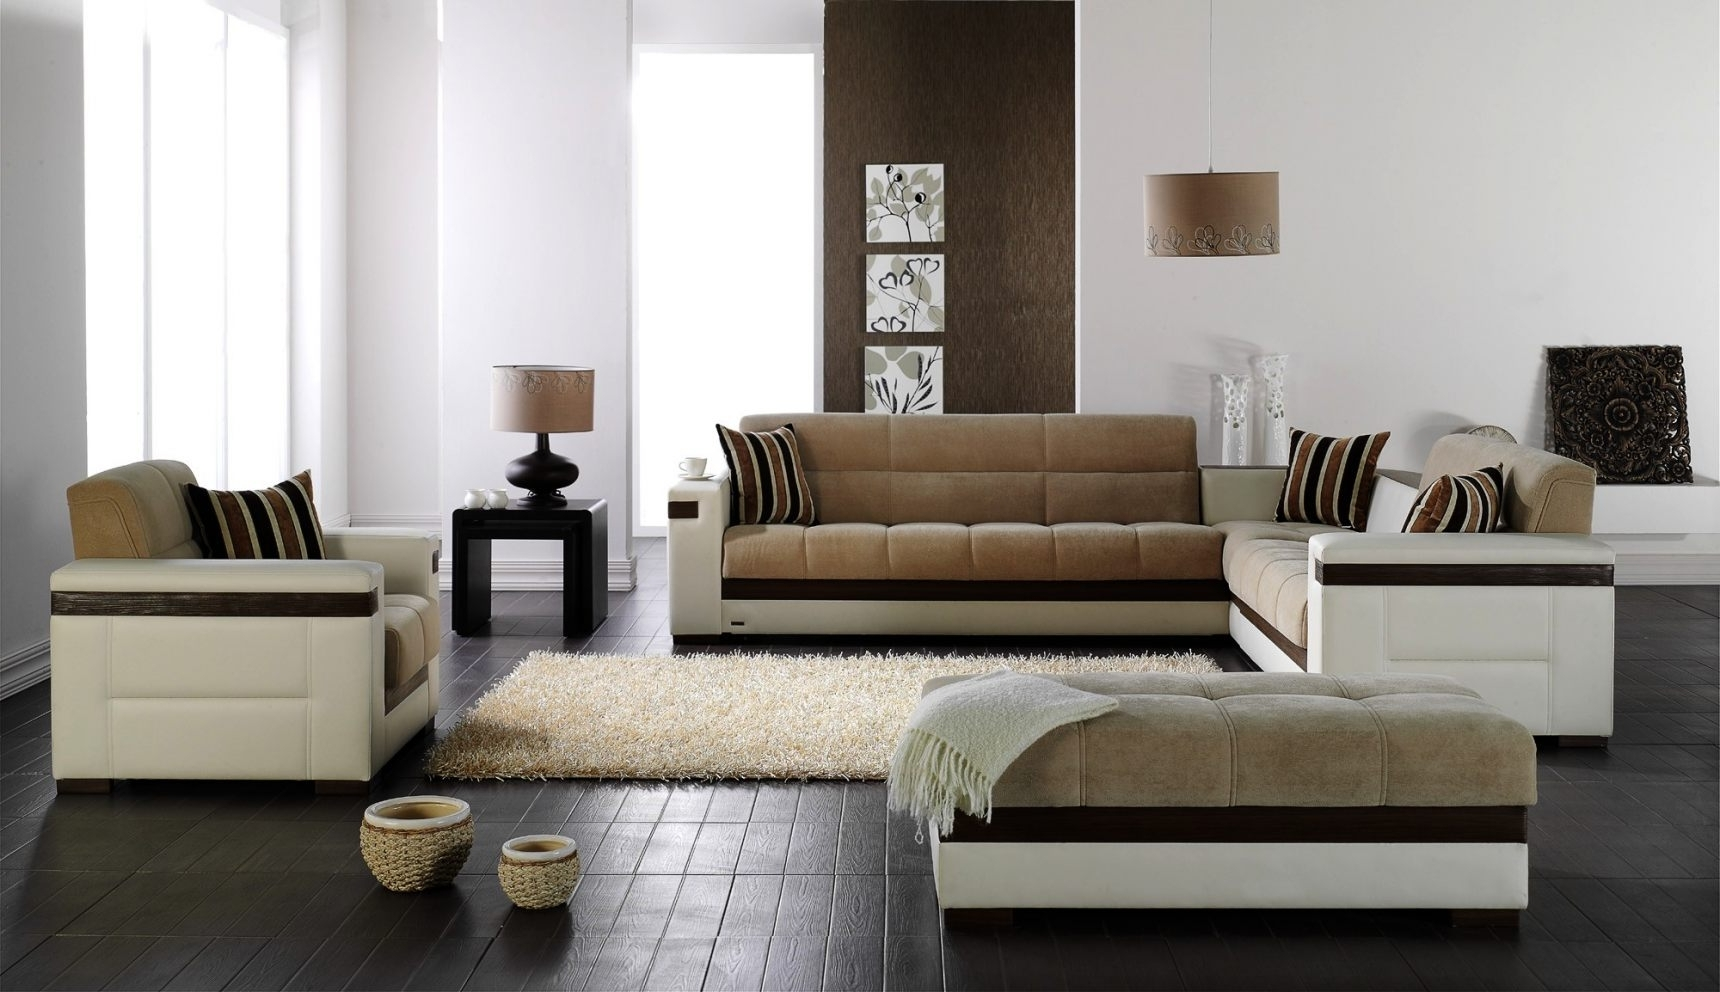 Newest Sectional Sofas From Europe Regarding European Sectional Sofas (View 4 of 20)